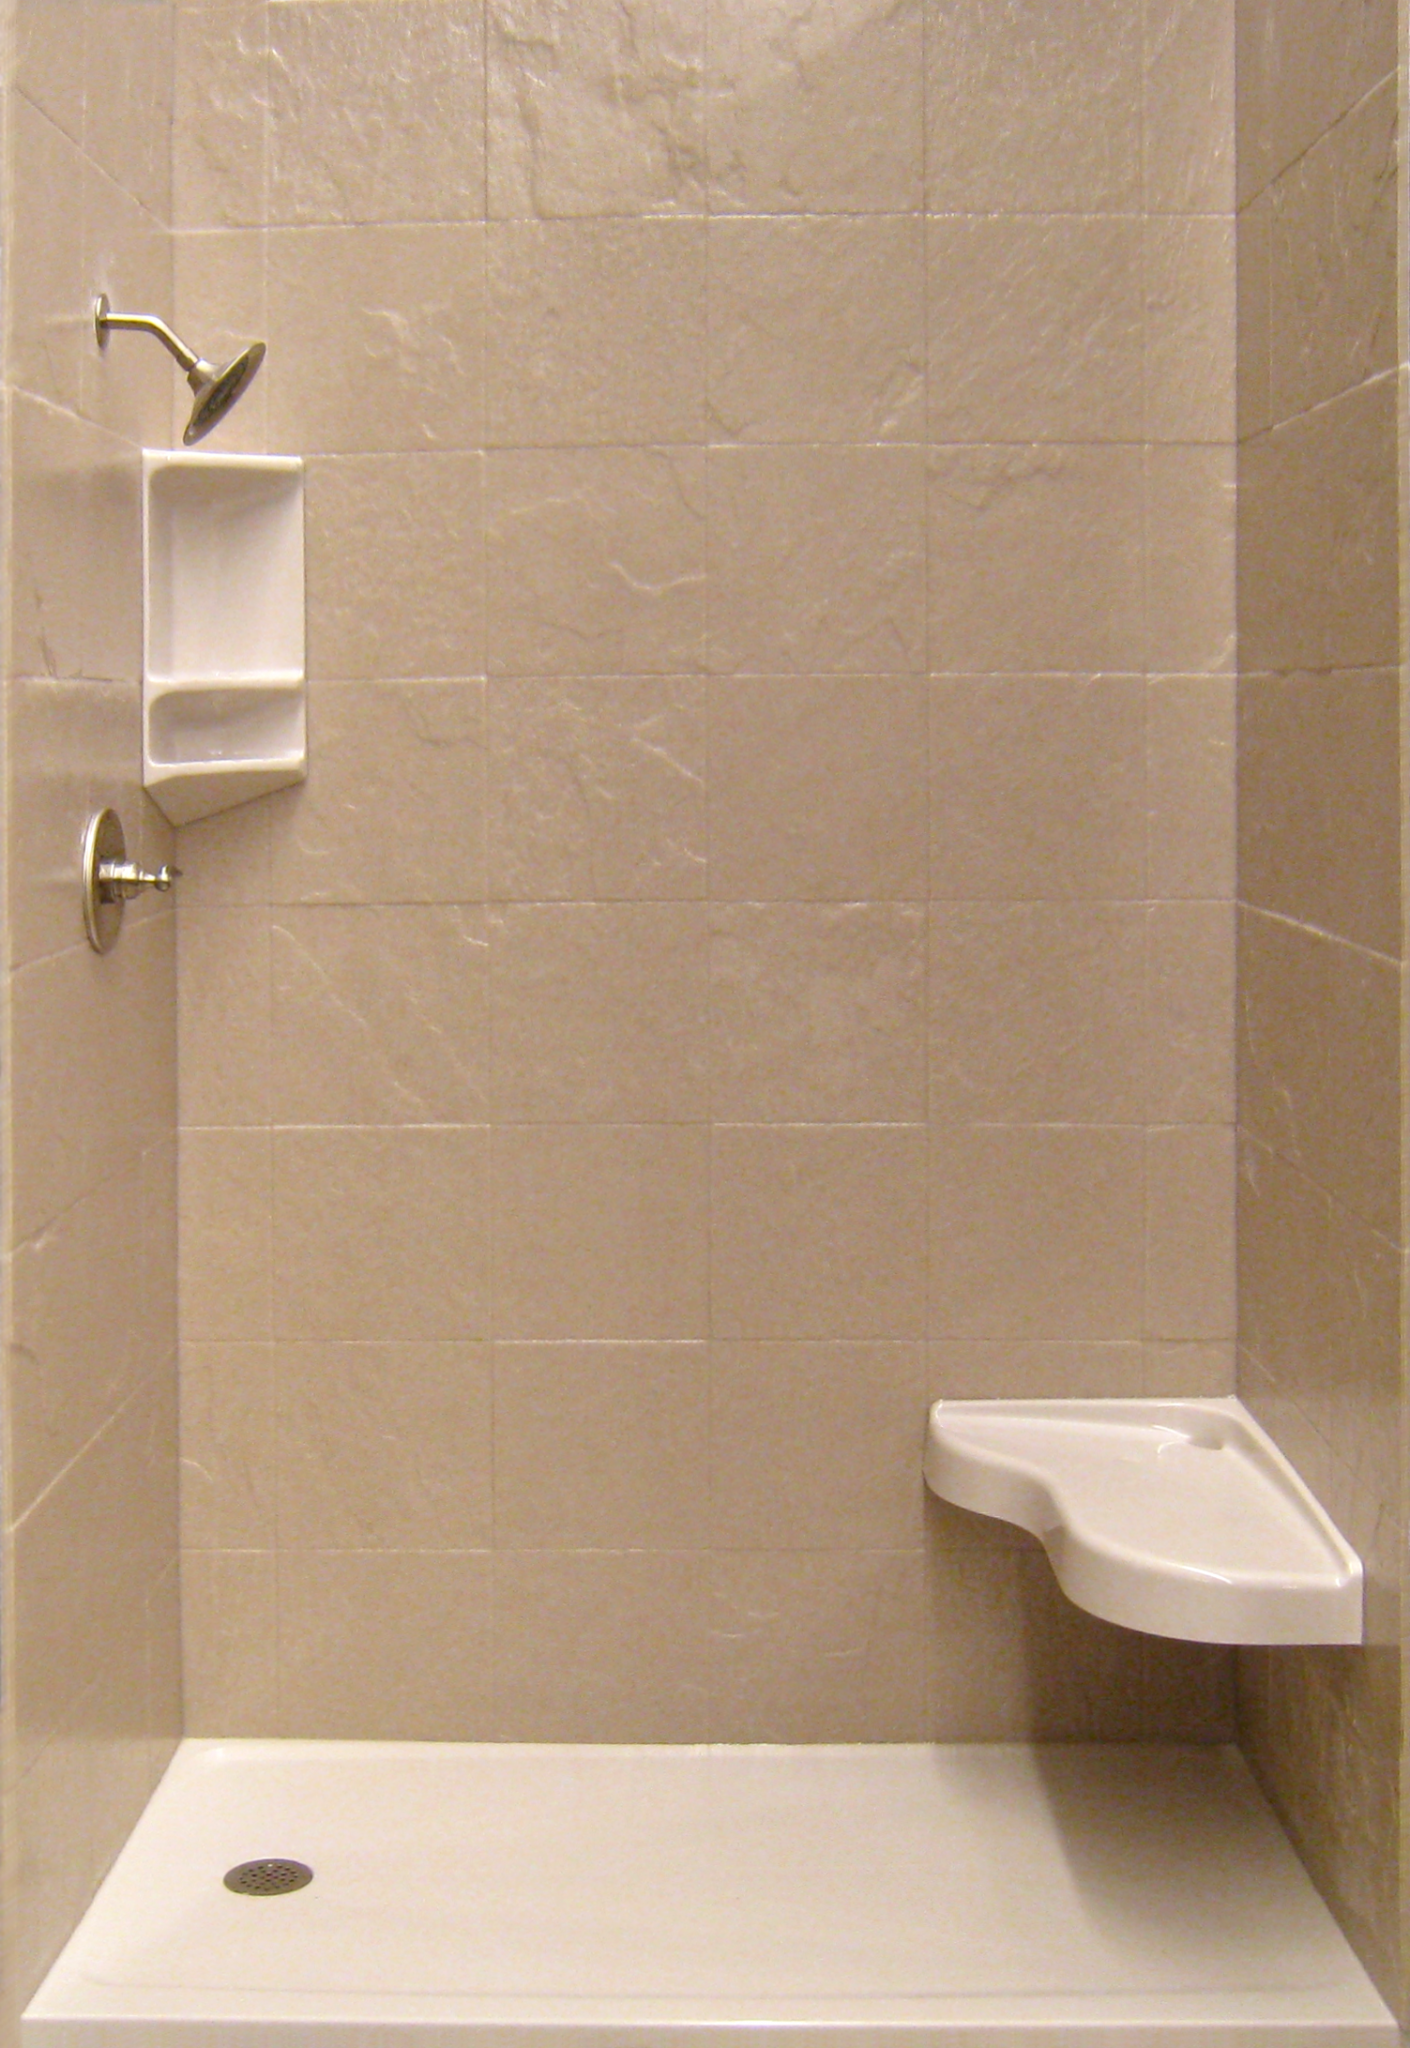 Onyx bathroom tile - Bathroom Remodeling Building A Better Bathroom With The Onyx Collection Onyx3 206x300